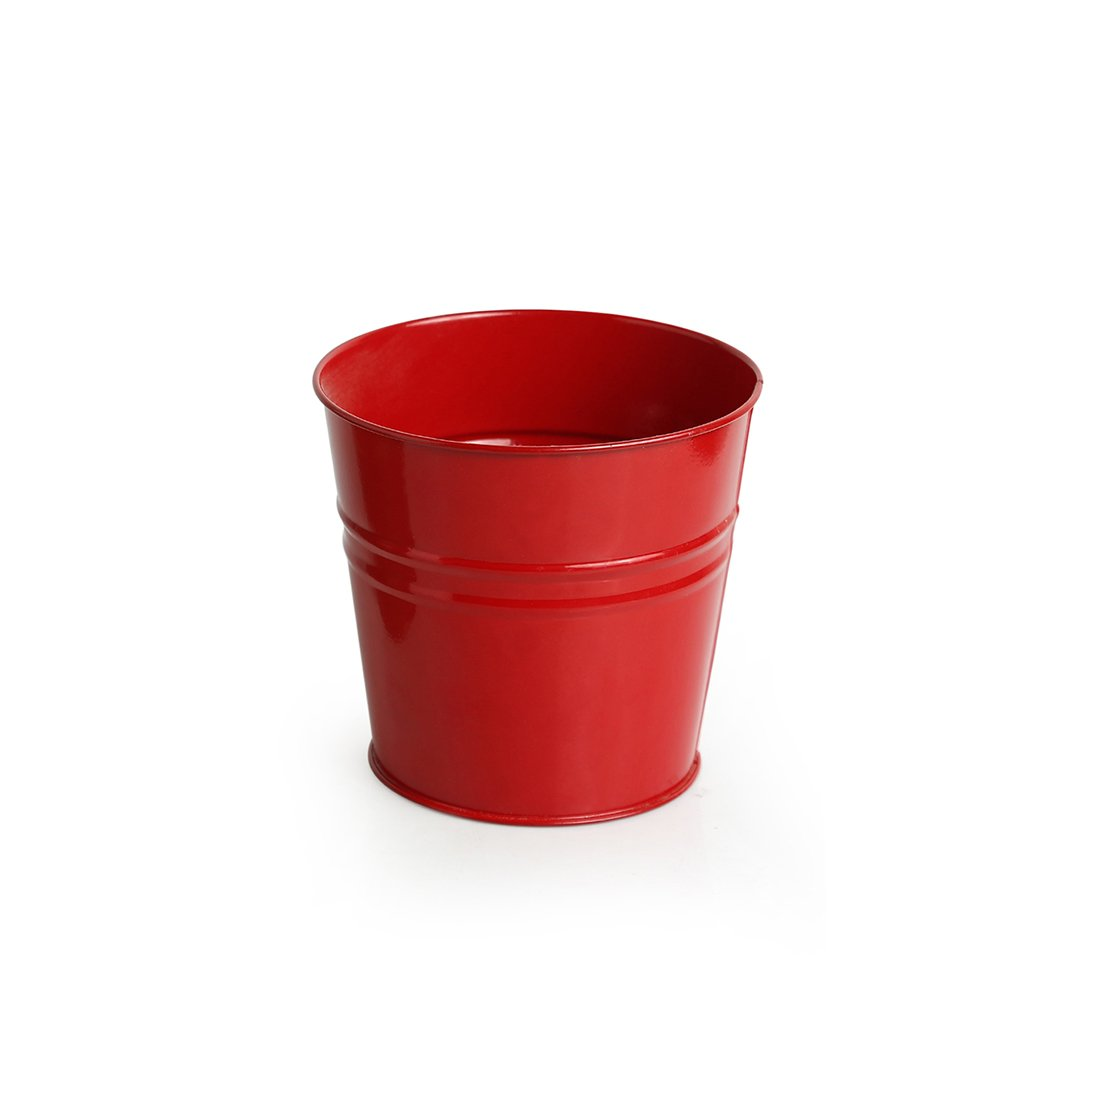 Moorni The Red Bucket Wall Planter Pot With Curved Holder In Galvanized Iron